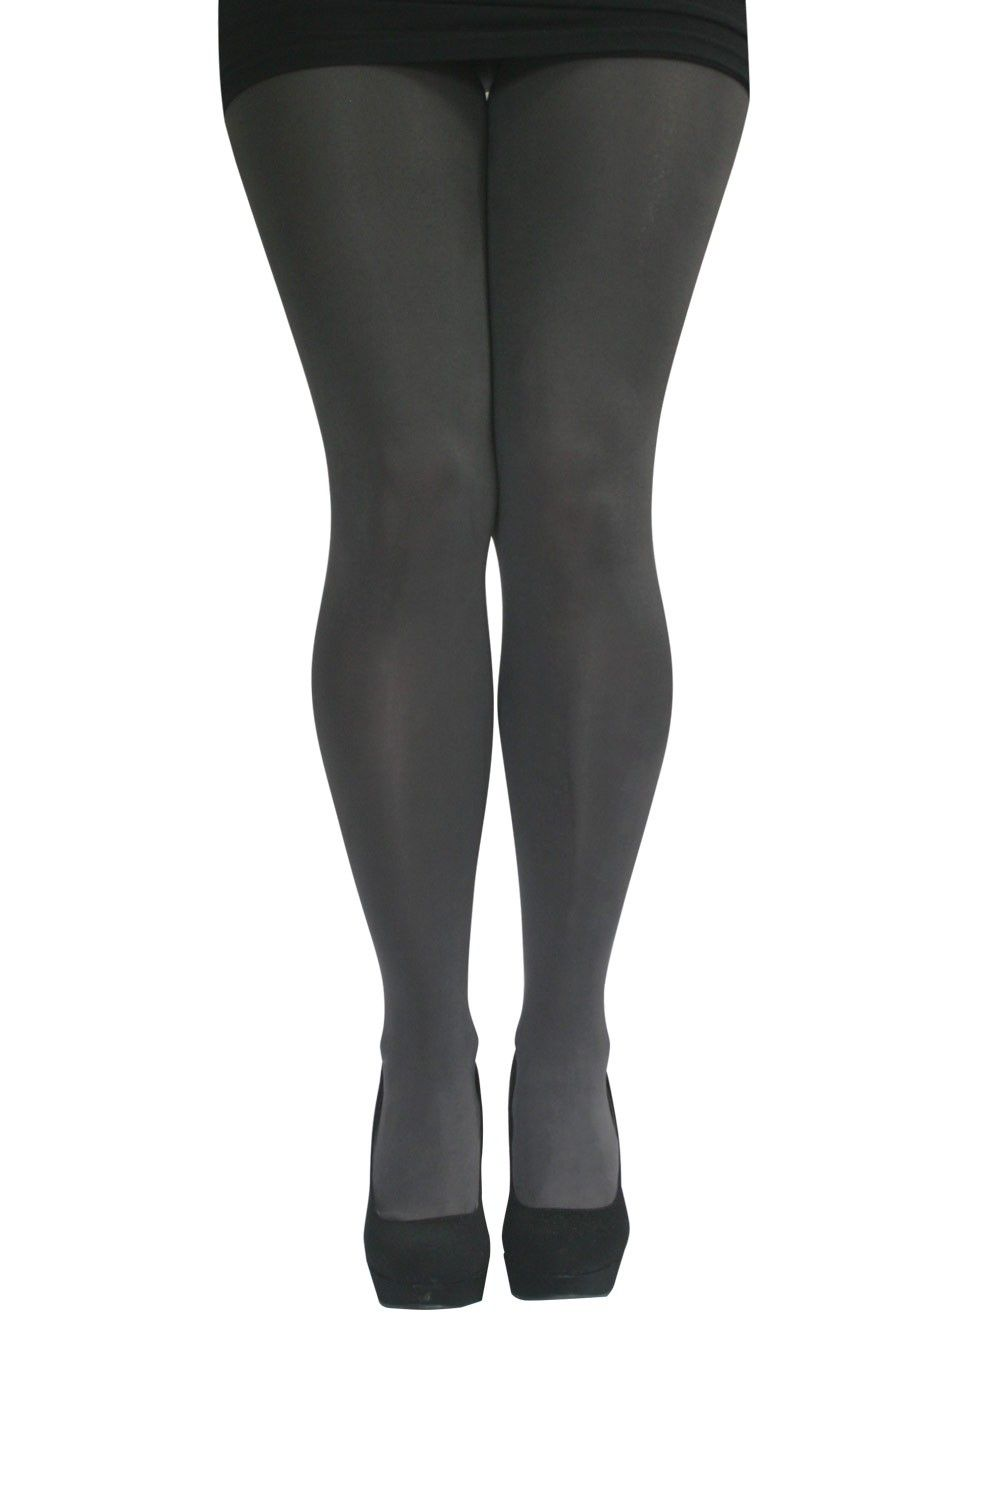 4e0272dc00016 Voluptuous Voodoo Totally Opaque Plus Size Tights in Storm Grey. $21.95  www.ministryoflegs.co.nz